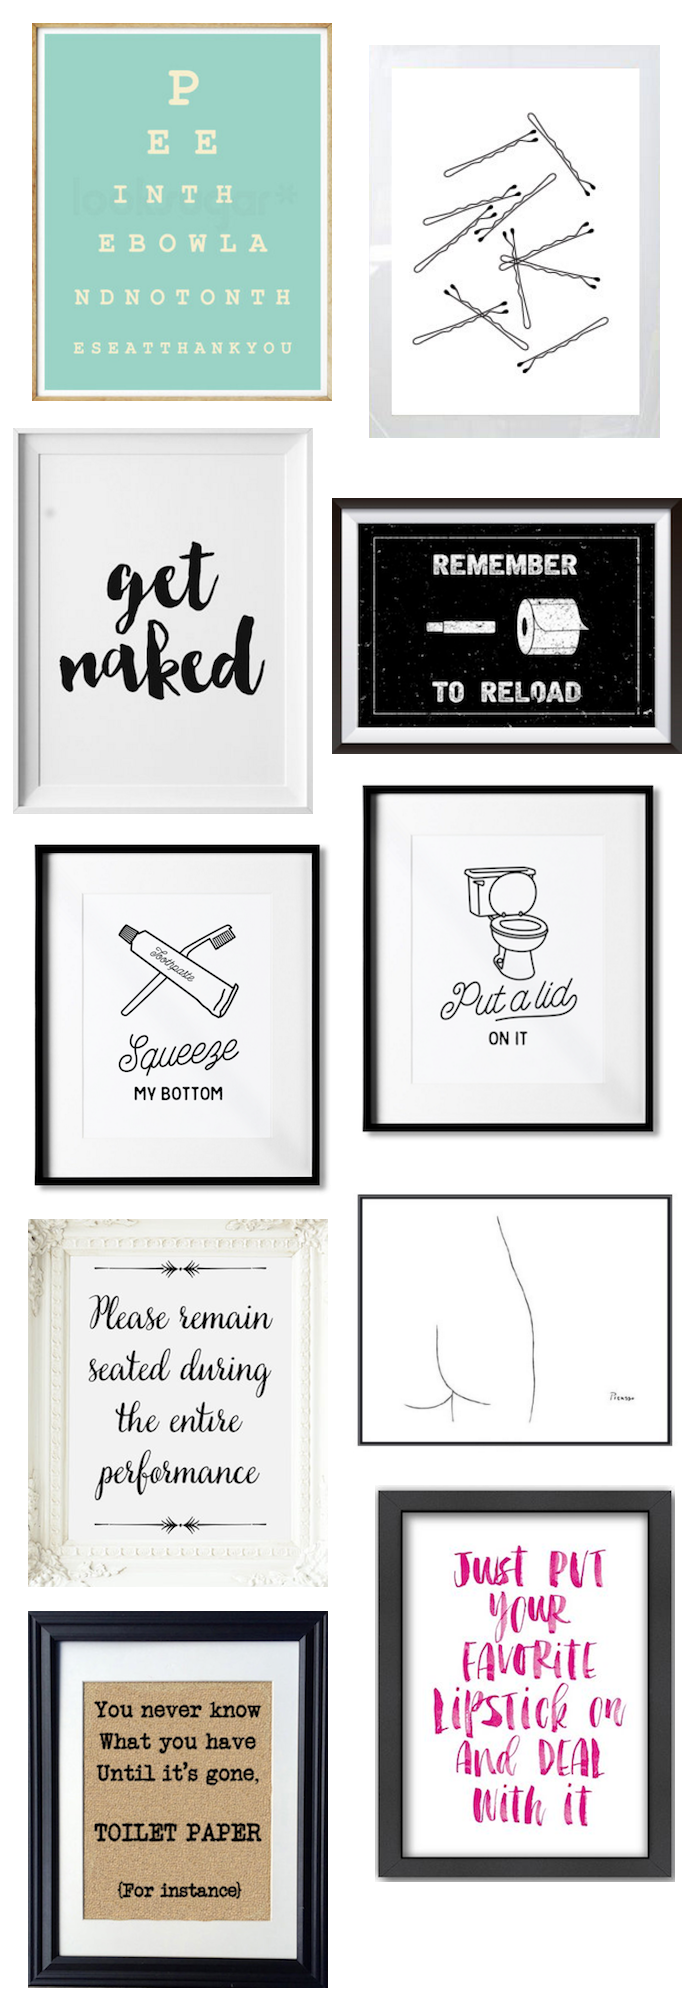 10 Funny Yet Classy Prints For Your Bathroom Bathroom Quotes Funny Bathroom Prints Bathroom Signs